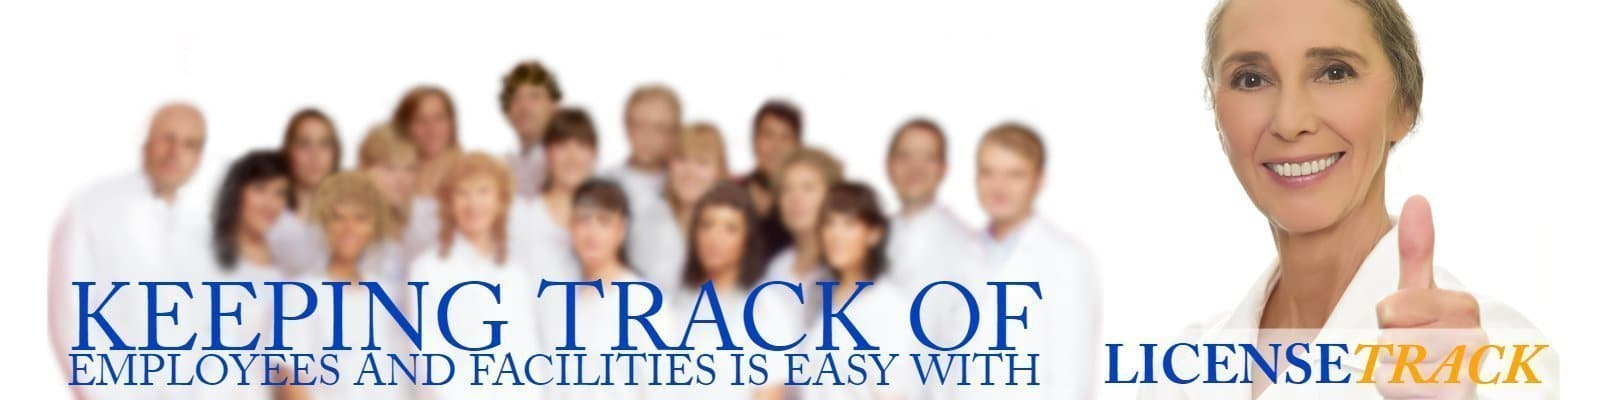 LICENSETrack, employee license tracking, facility license tracking, pharmacy license tracking, pharmacy compliance